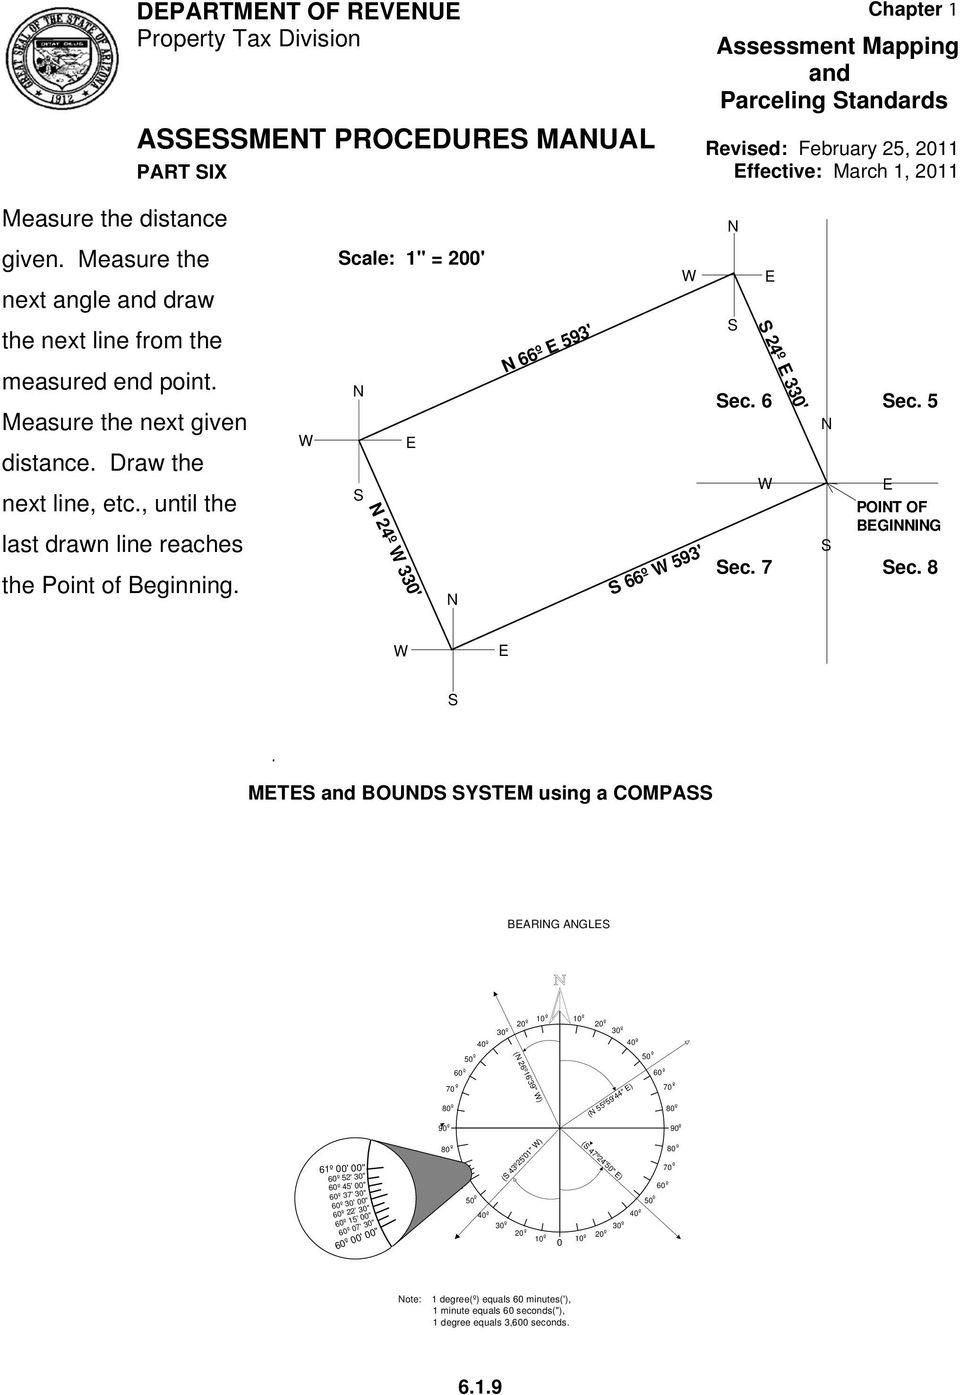 "8 W E S METES BOUNDS SYSTEM using a COMPASS BEARING ANGLES 40º 50º 60º 70º 80º 90º 10º 20º 30º (N 26º16'39"" W) 10º 20º 30º 40º (N 55º59'44"" E) 50º 60º 70º 80º 90º 61º 00' 00"" 60º 52' 30"" 60º 45' 00"""